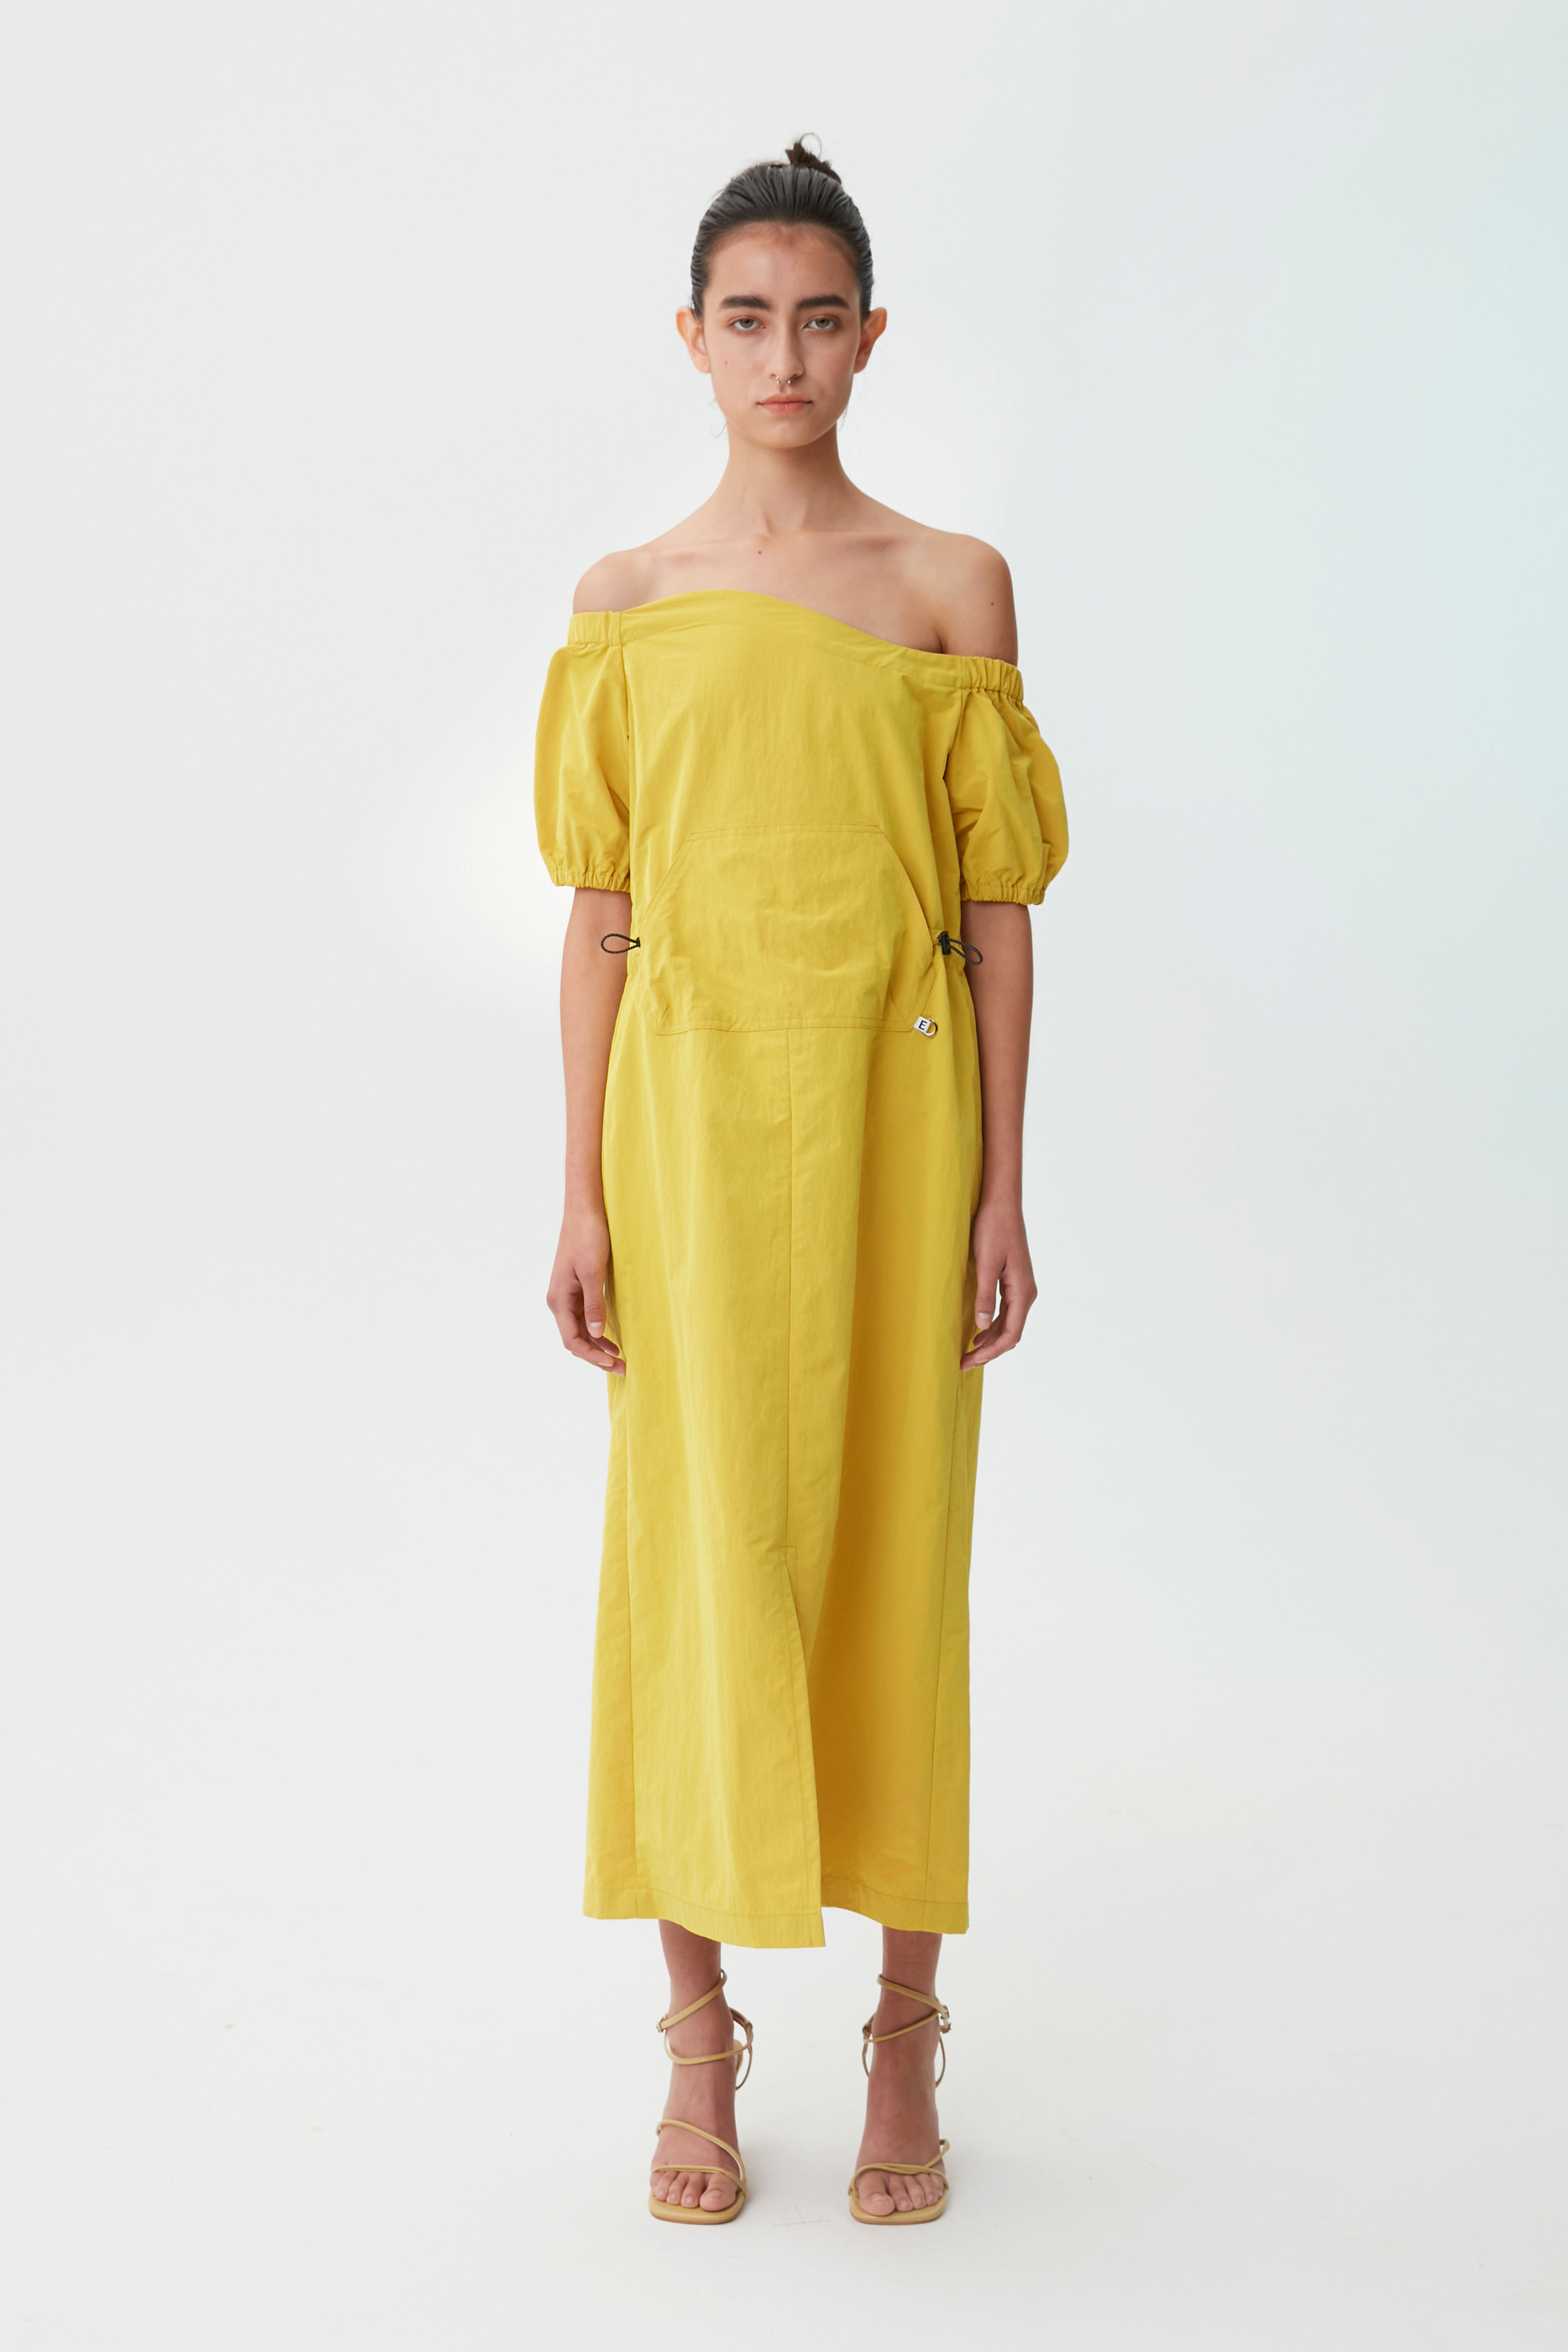 [21 SUMMER] WAVE OFF-THE SHOULDER DRESS (YELLOW)